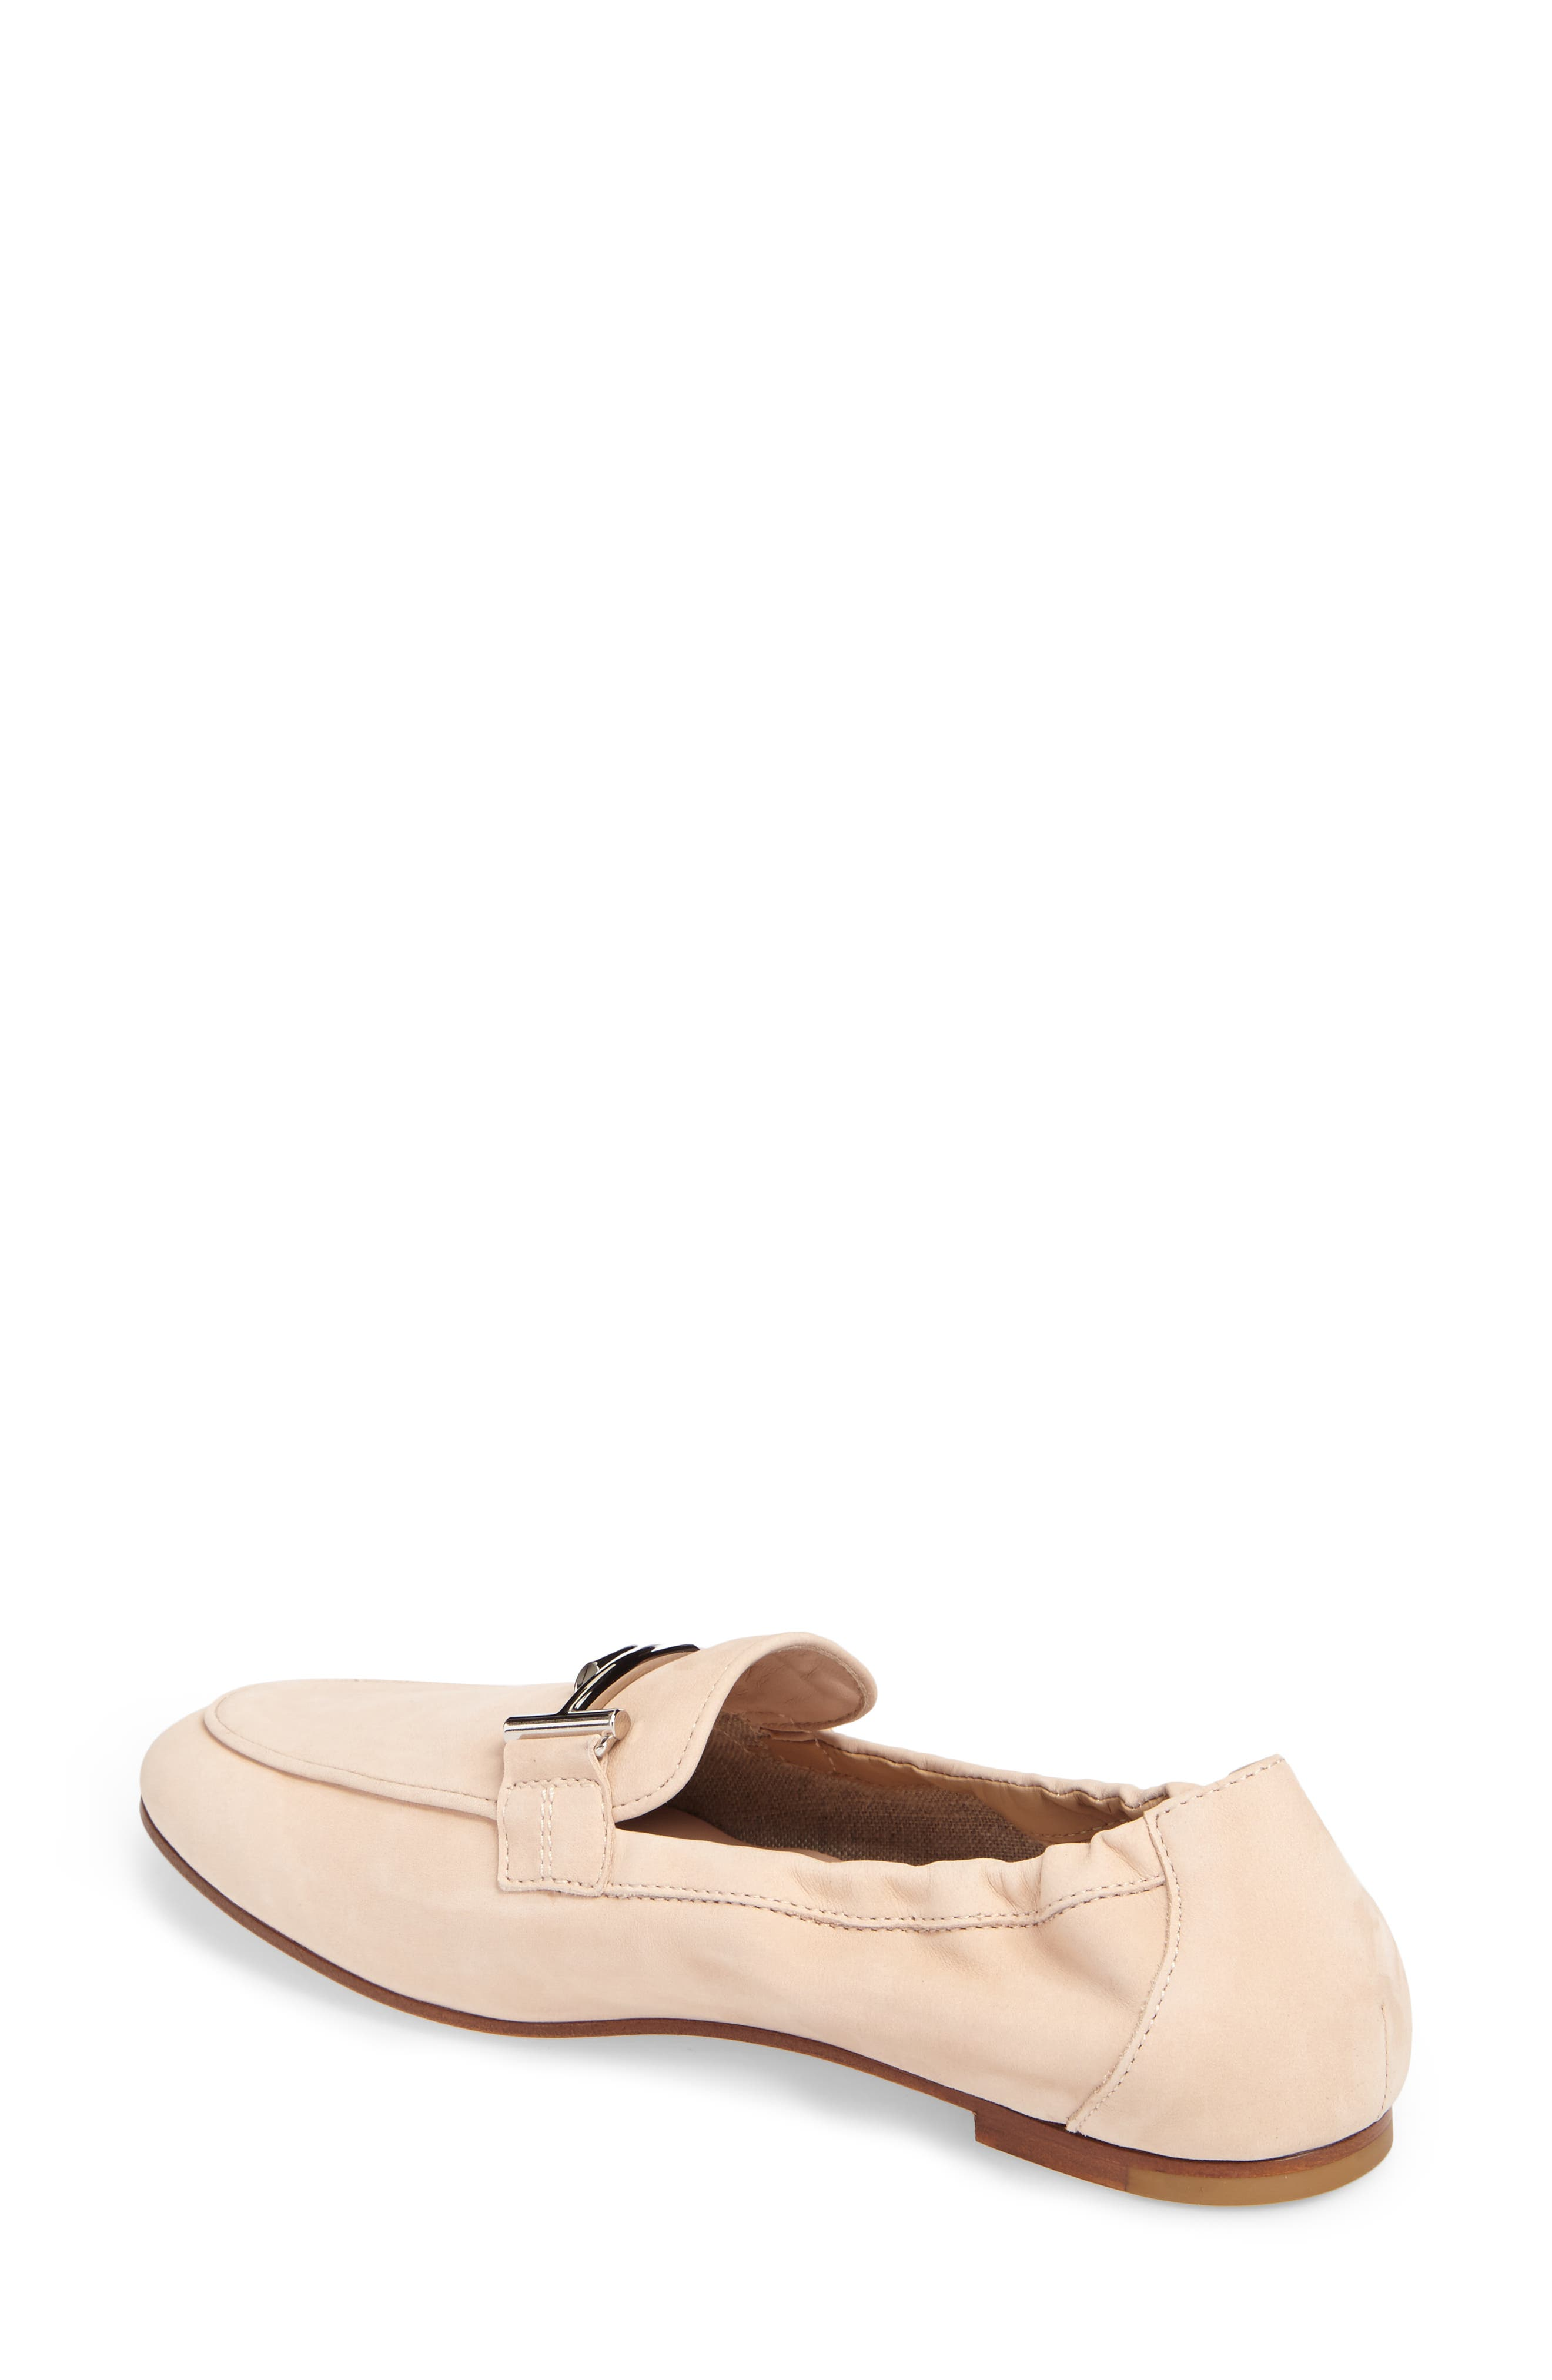 Double T Scrunch Loafer,                             Alternate thumbnail 7, color,